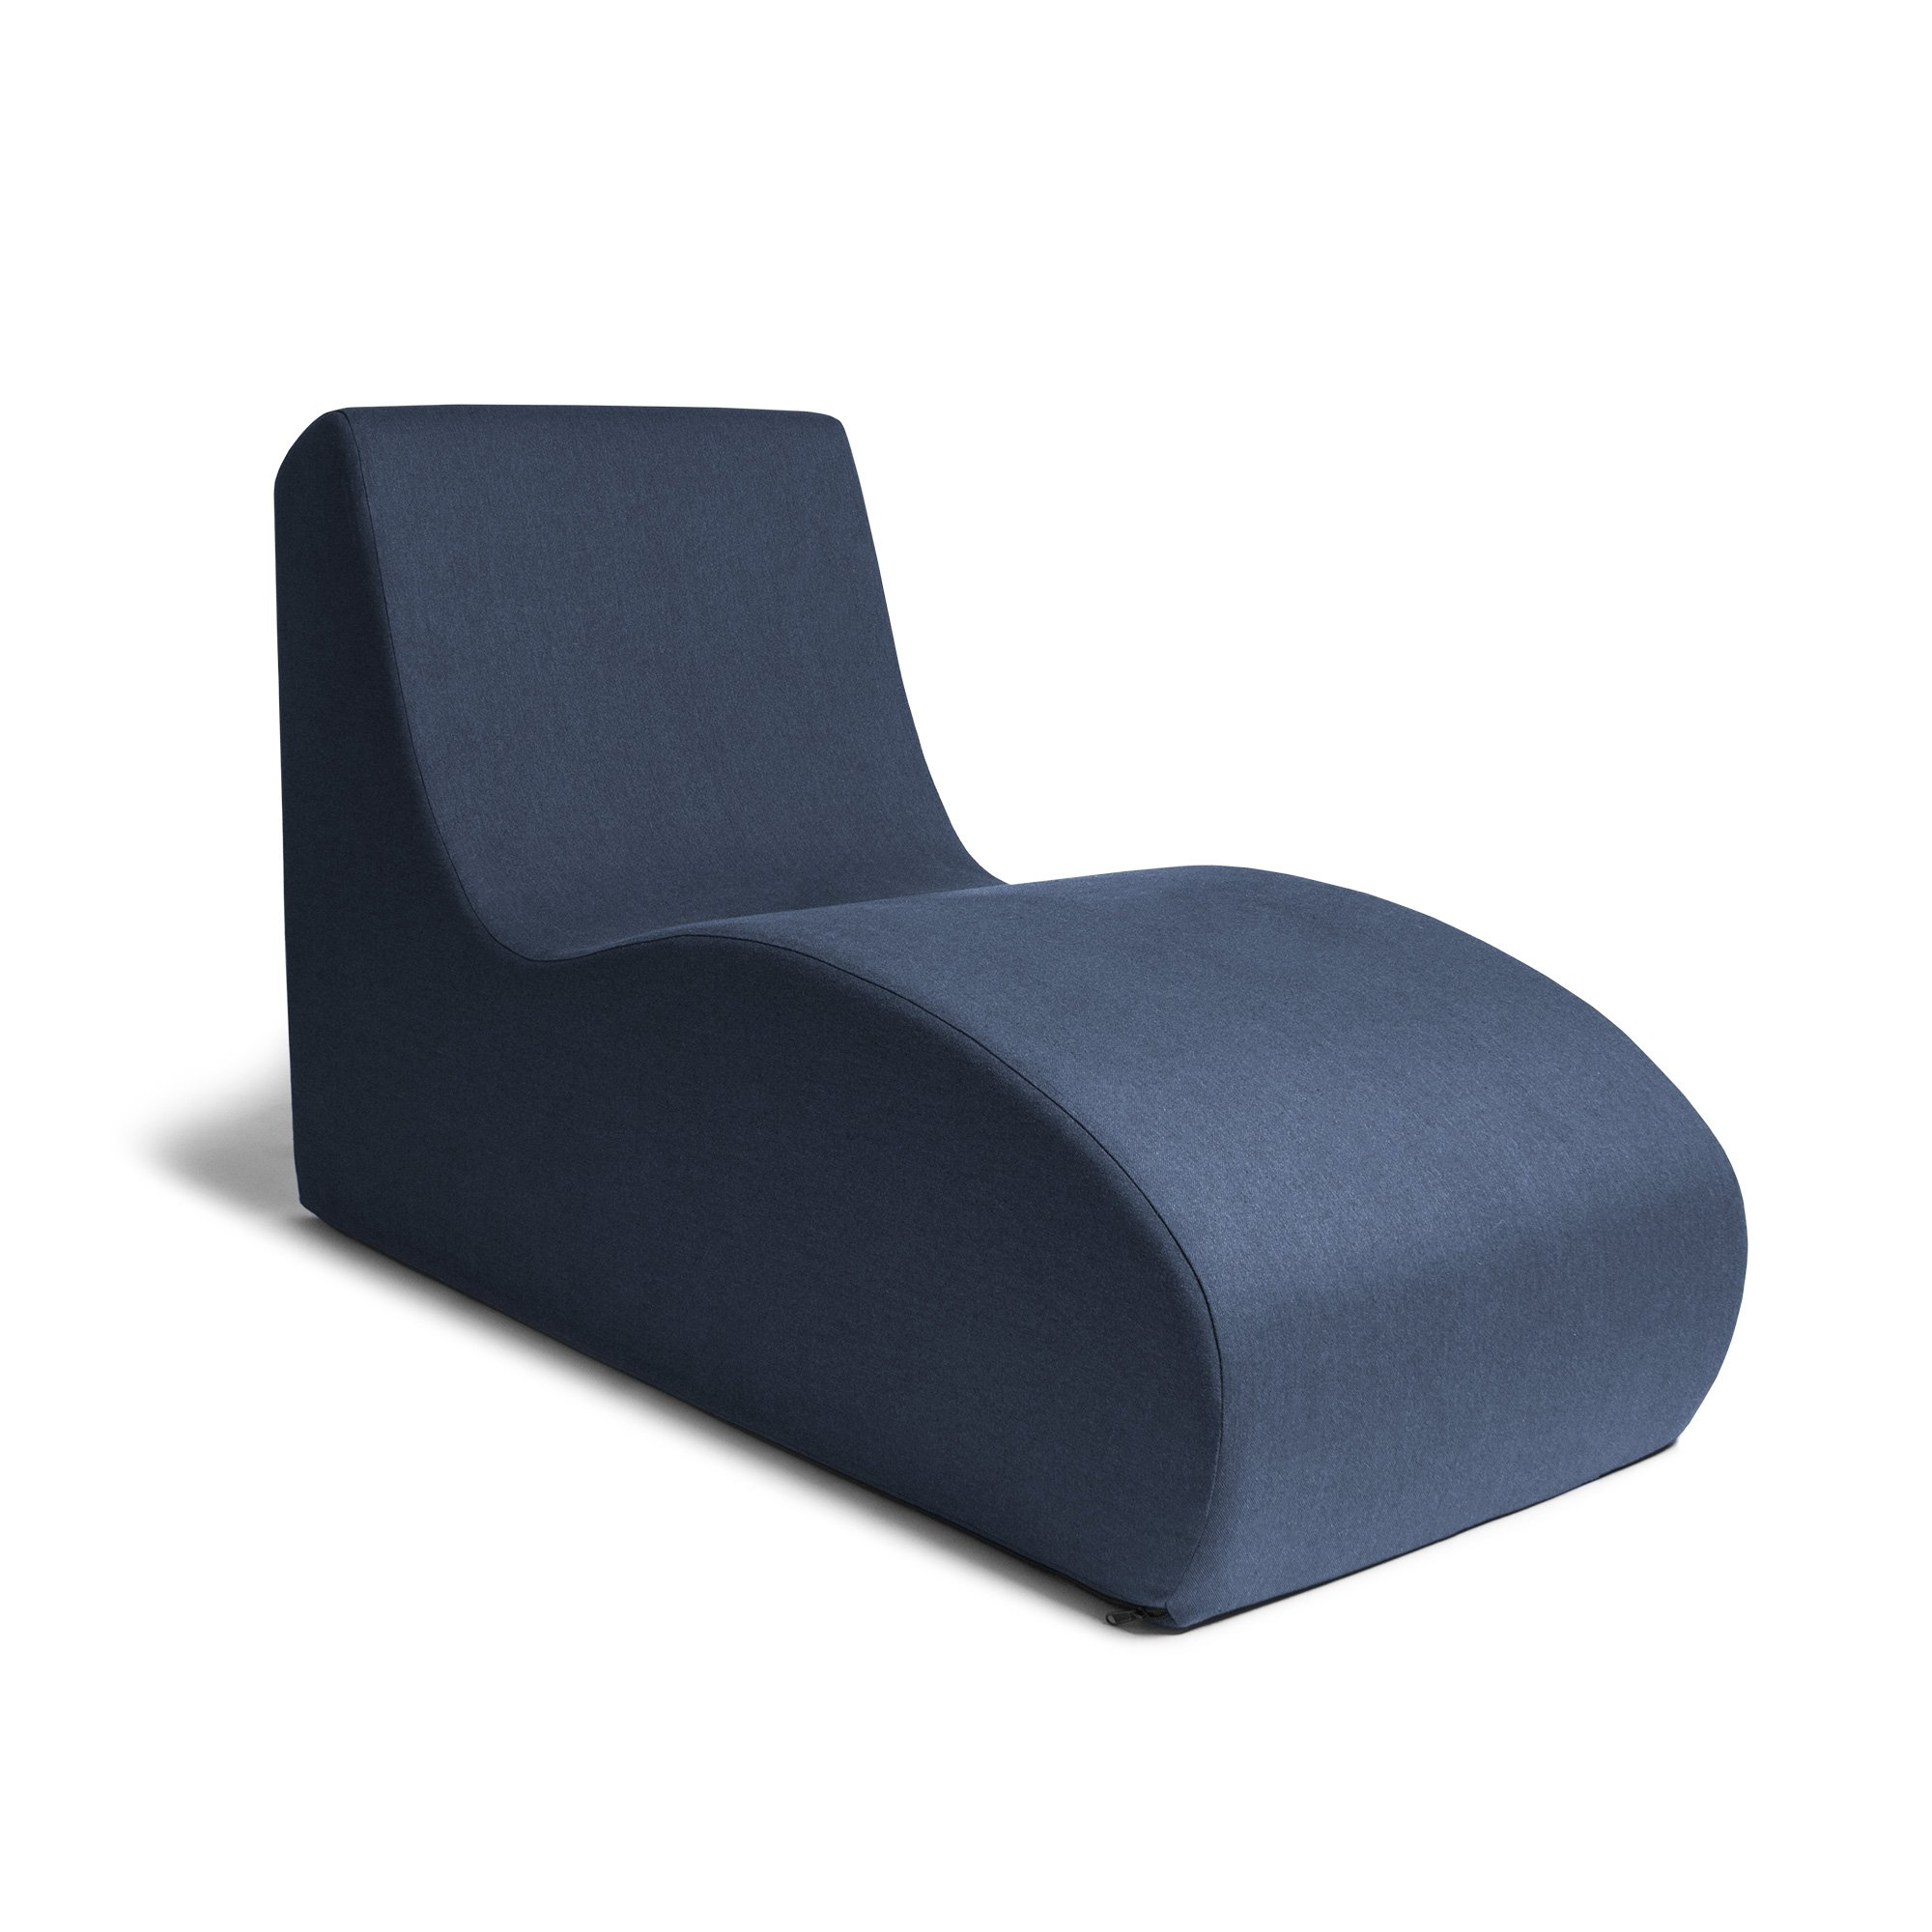 Jaxx Shea Lounger - Plush Foam Lounge Chair for Living Rooms, Dorms, or Offices - Navy by Jaxx